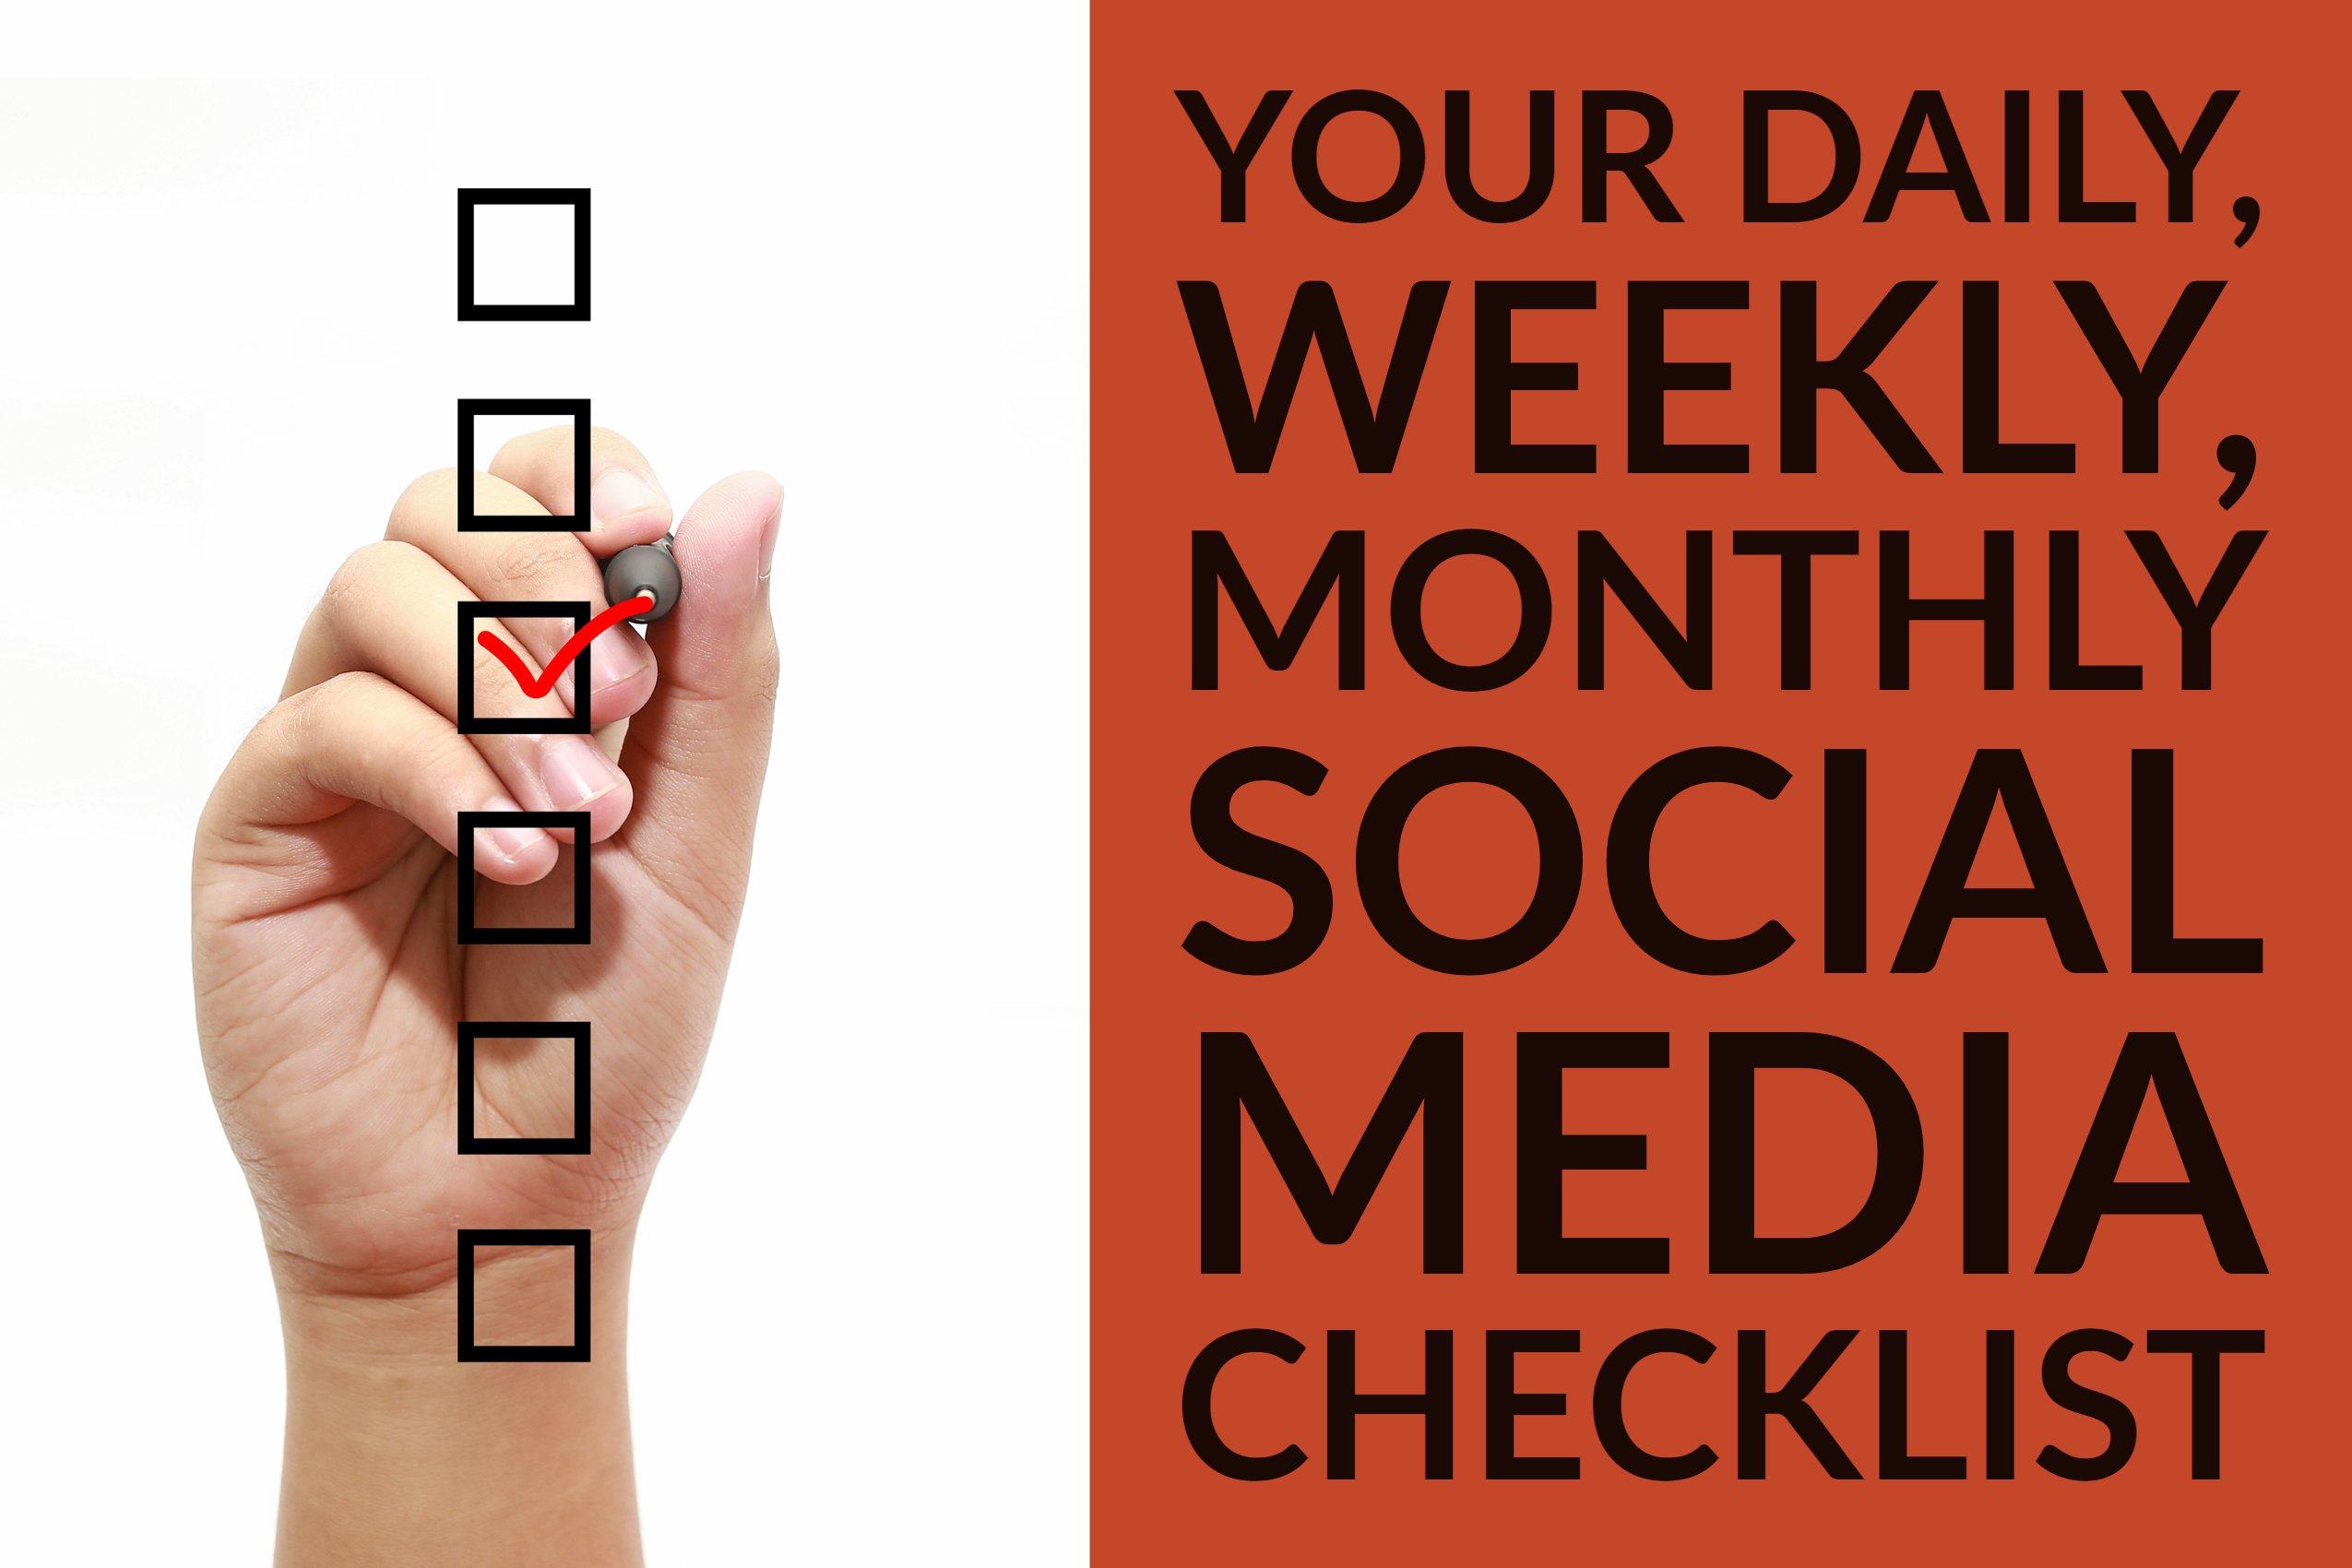 Your Daily, Weekly, Monthly Social Media Checklist (1)